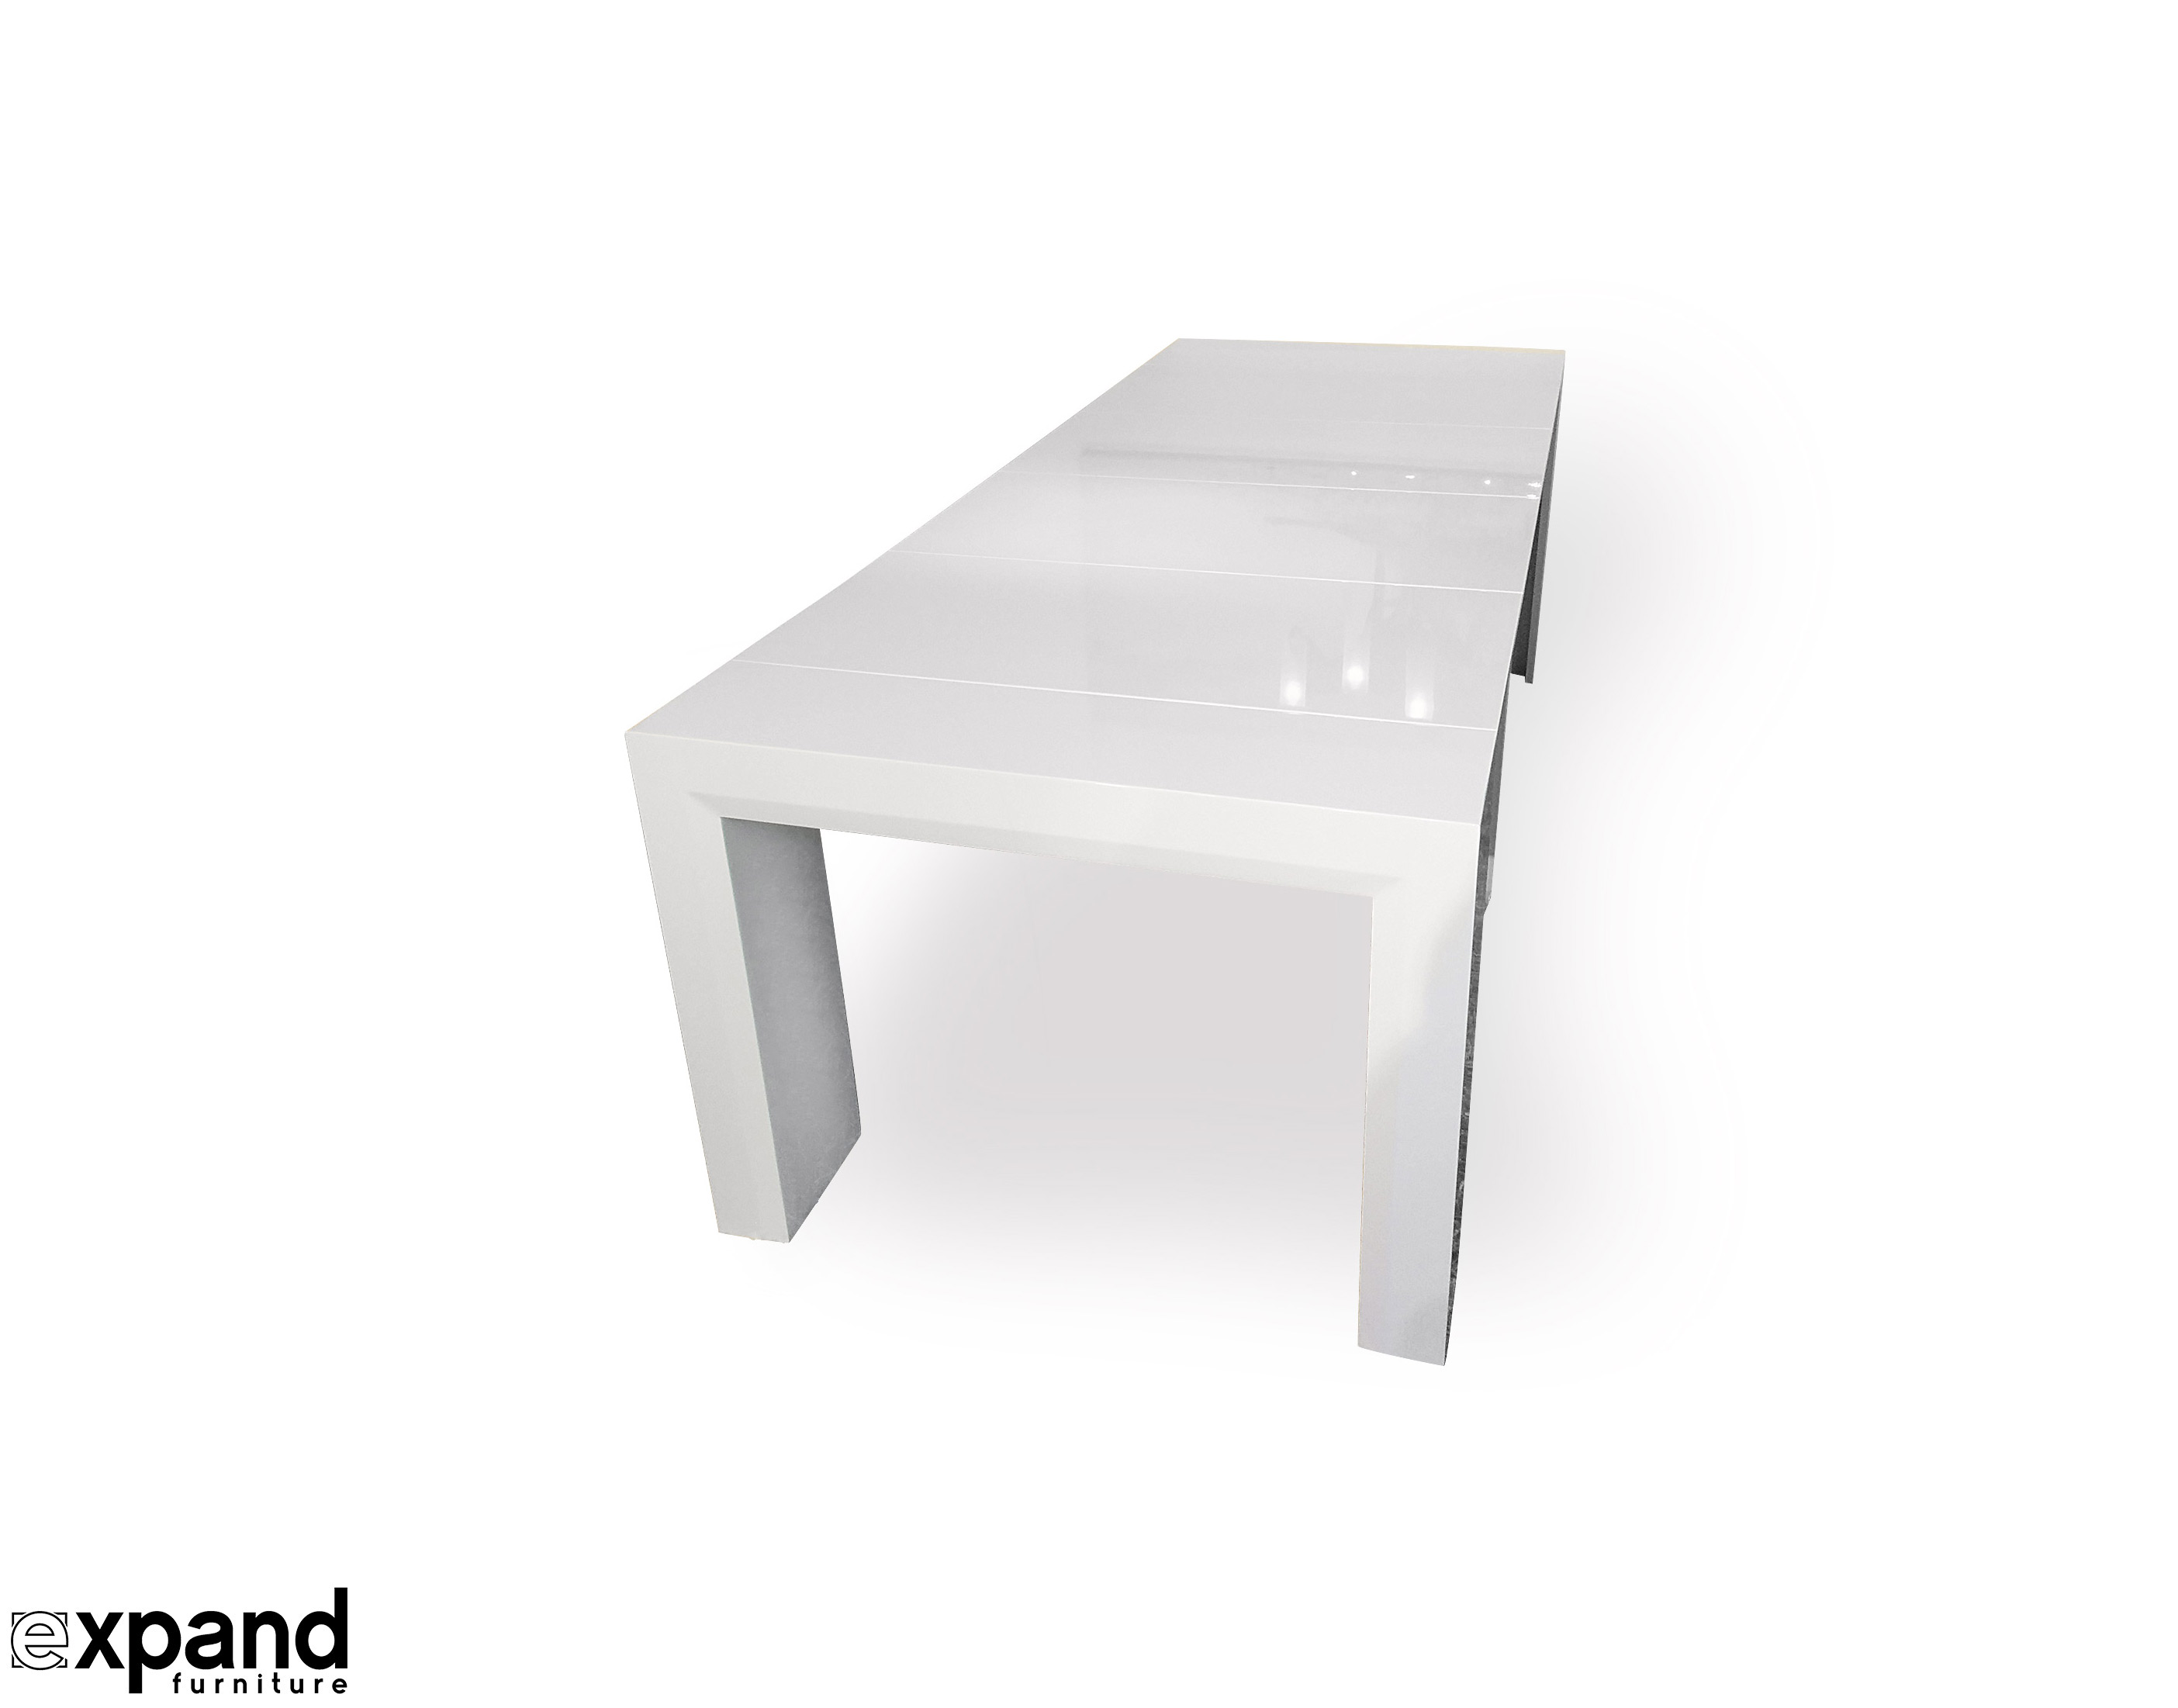 junior giant table | expand furniture